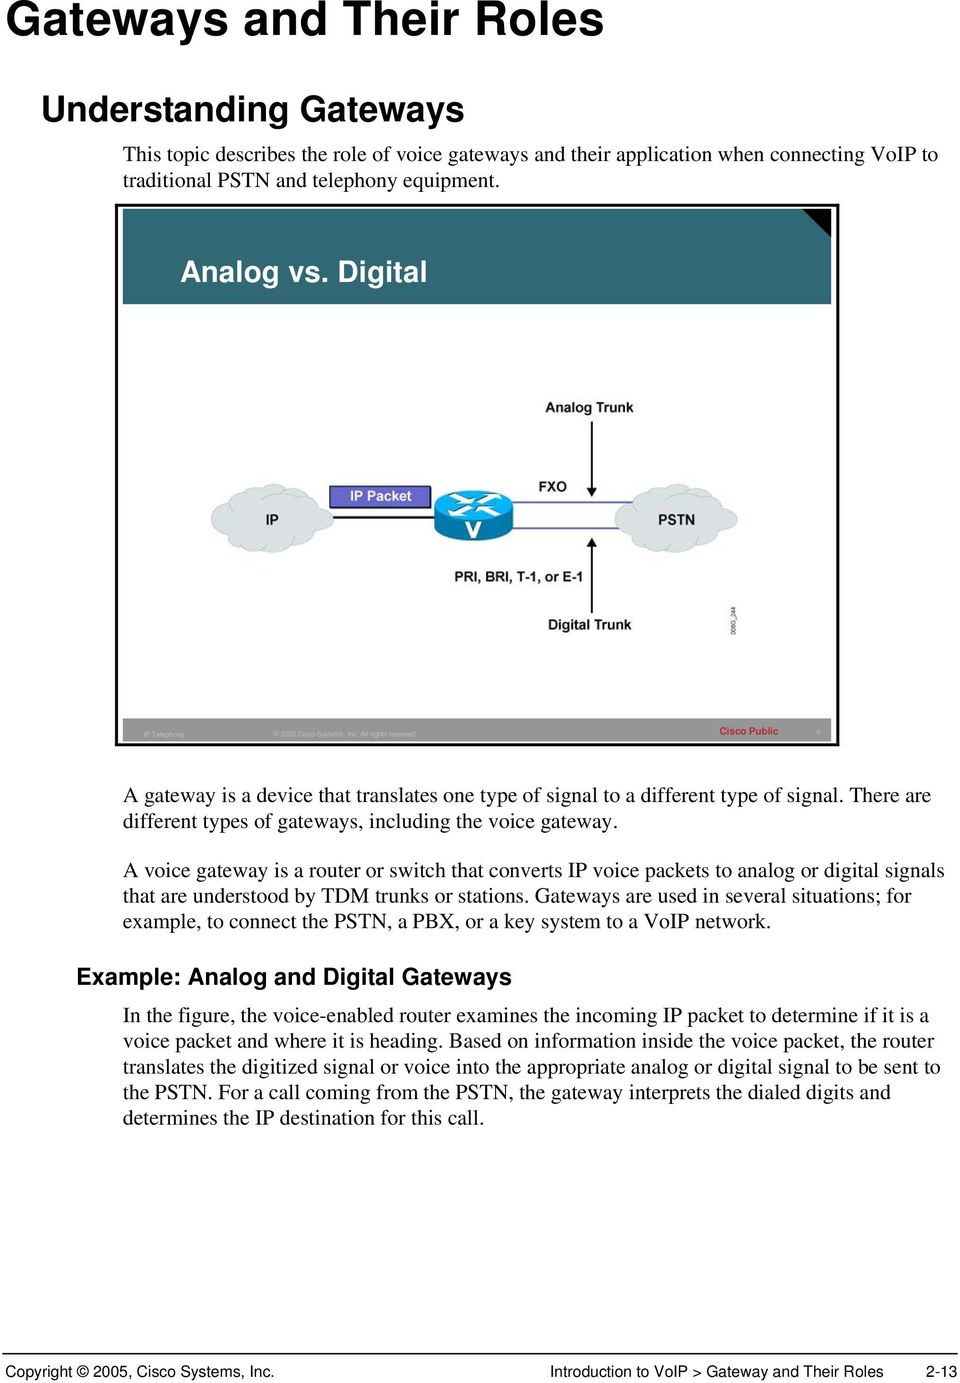 A voice gateway is a router or switch that converts IP voice packets to analog or digital signals that are understood by TDM trunks or stations.